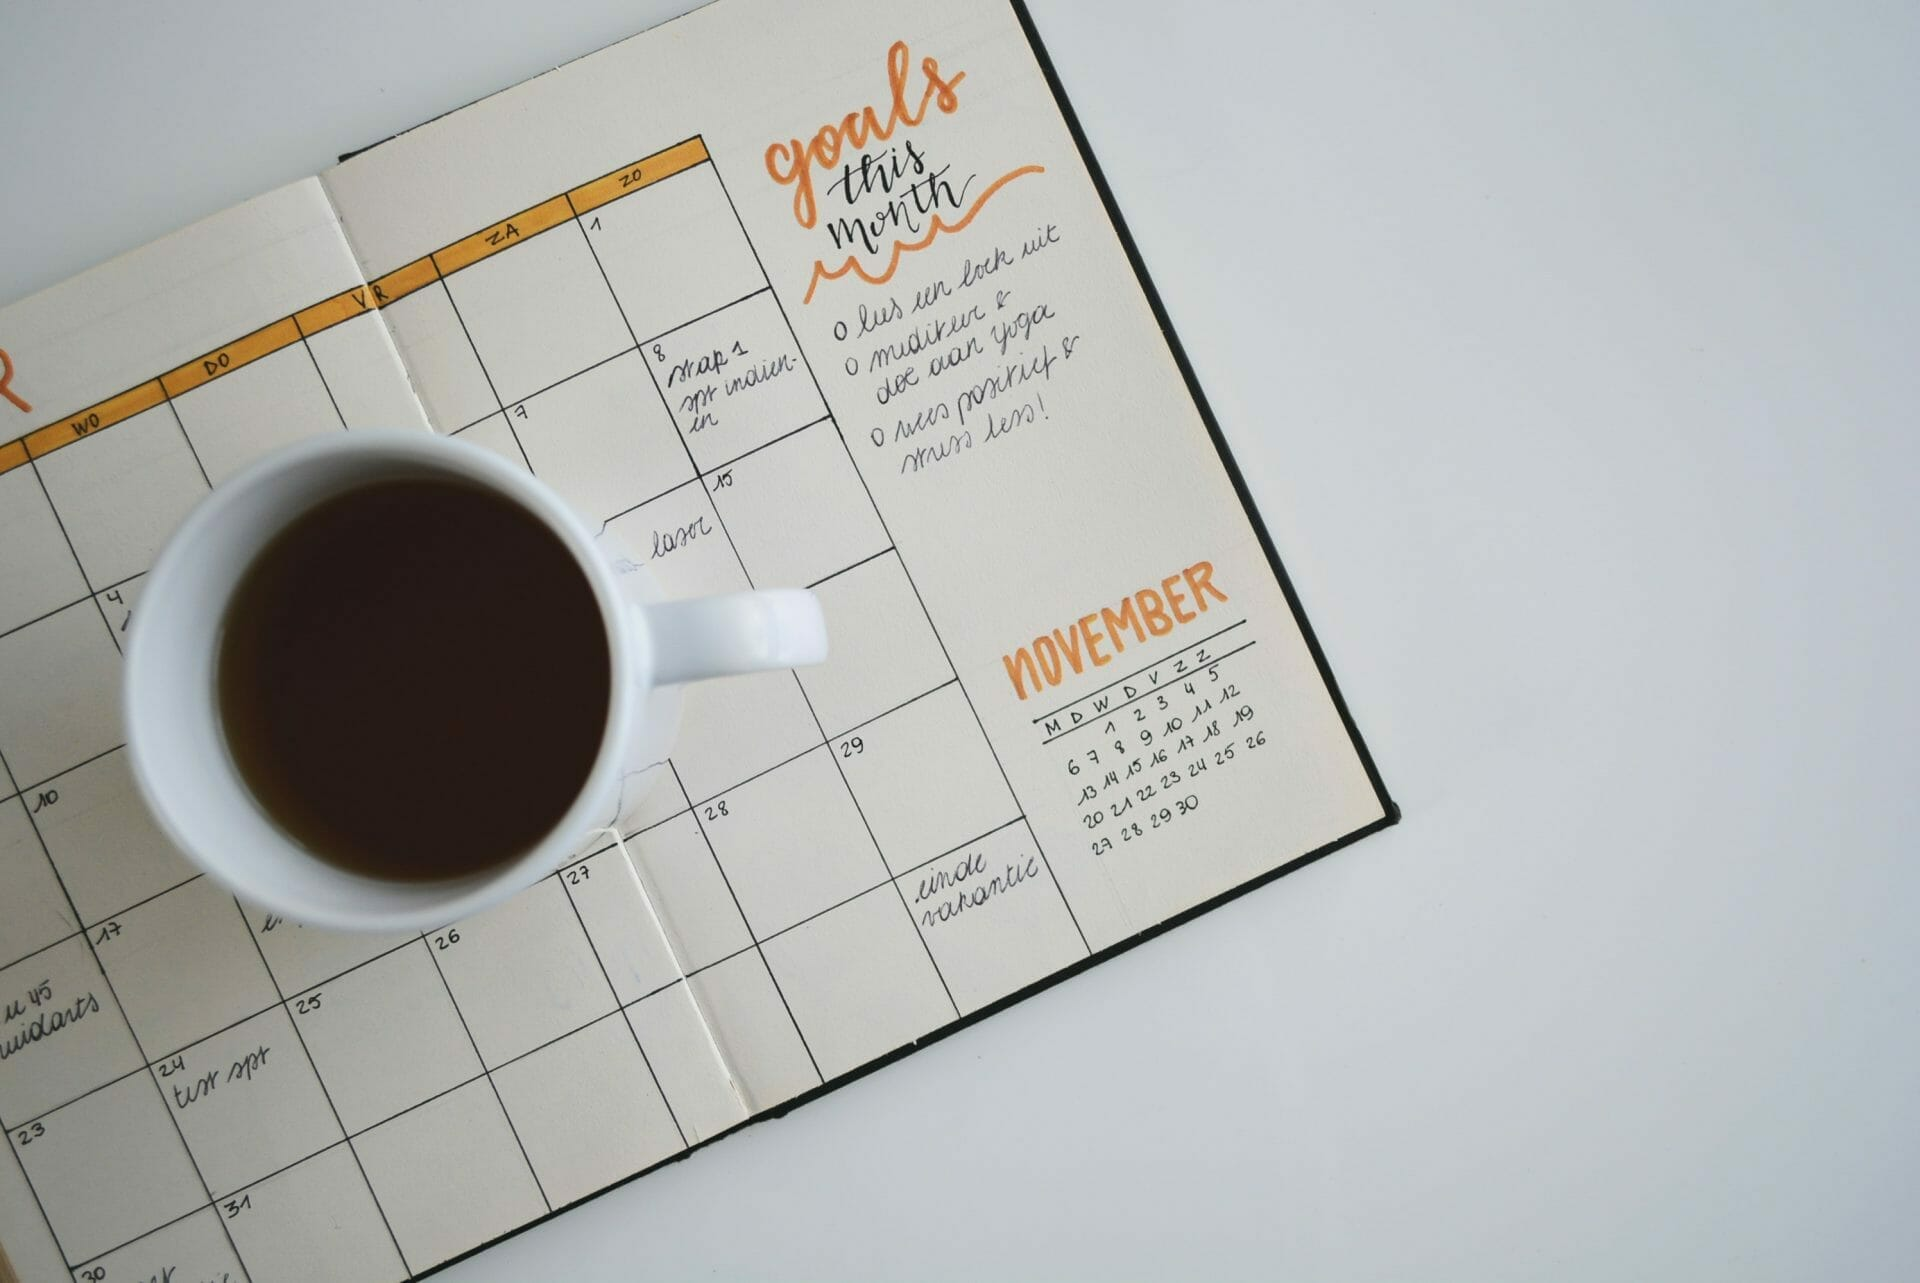 picture of calendar open to November and coffee mug for Real Estate News for Investors Podcast Episode #386